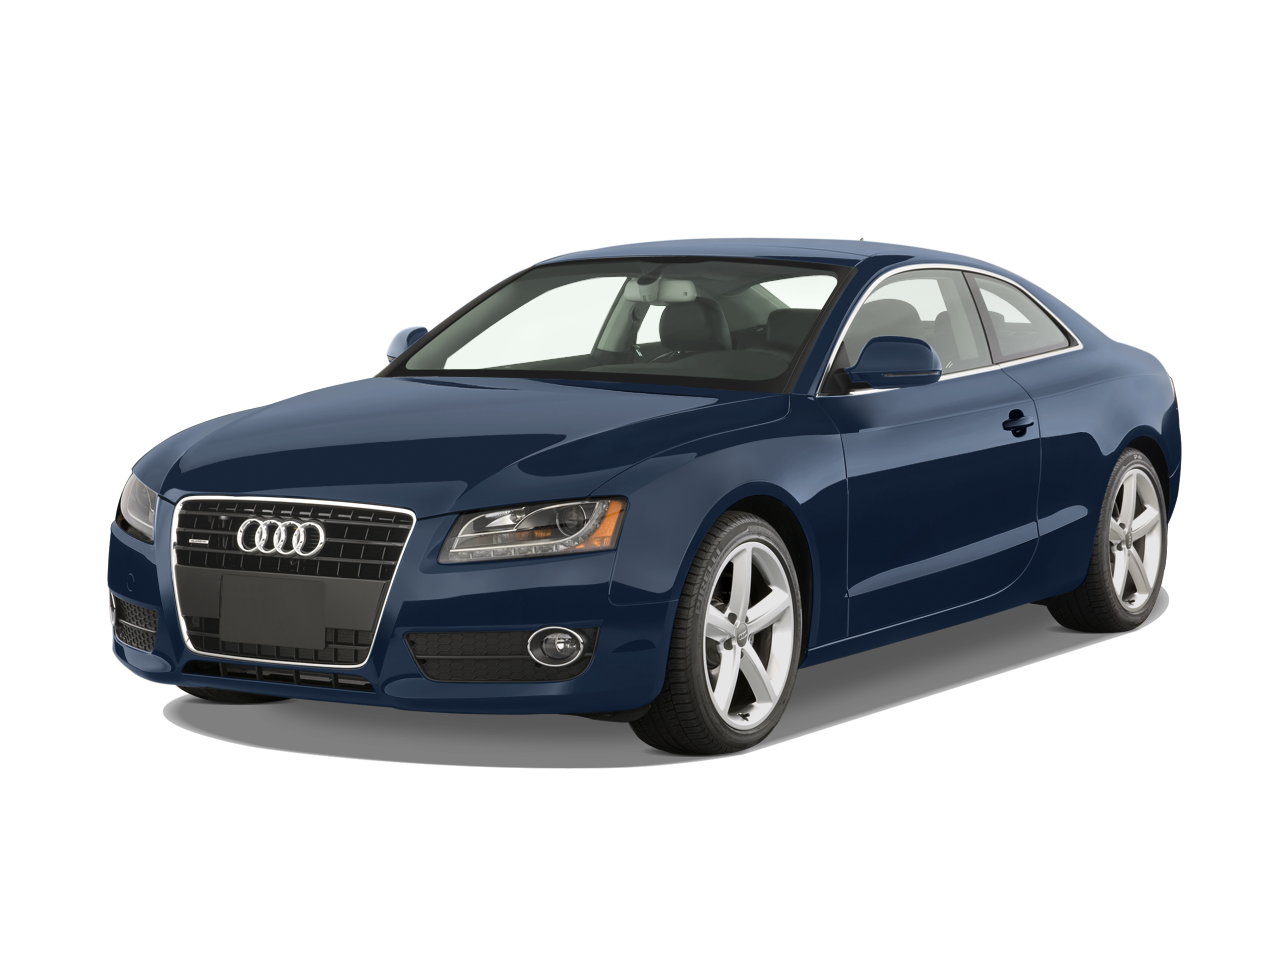 2009 audi a5 sportback latest news features and. Black Bedroom Furniture Sets. Home Design Ideas